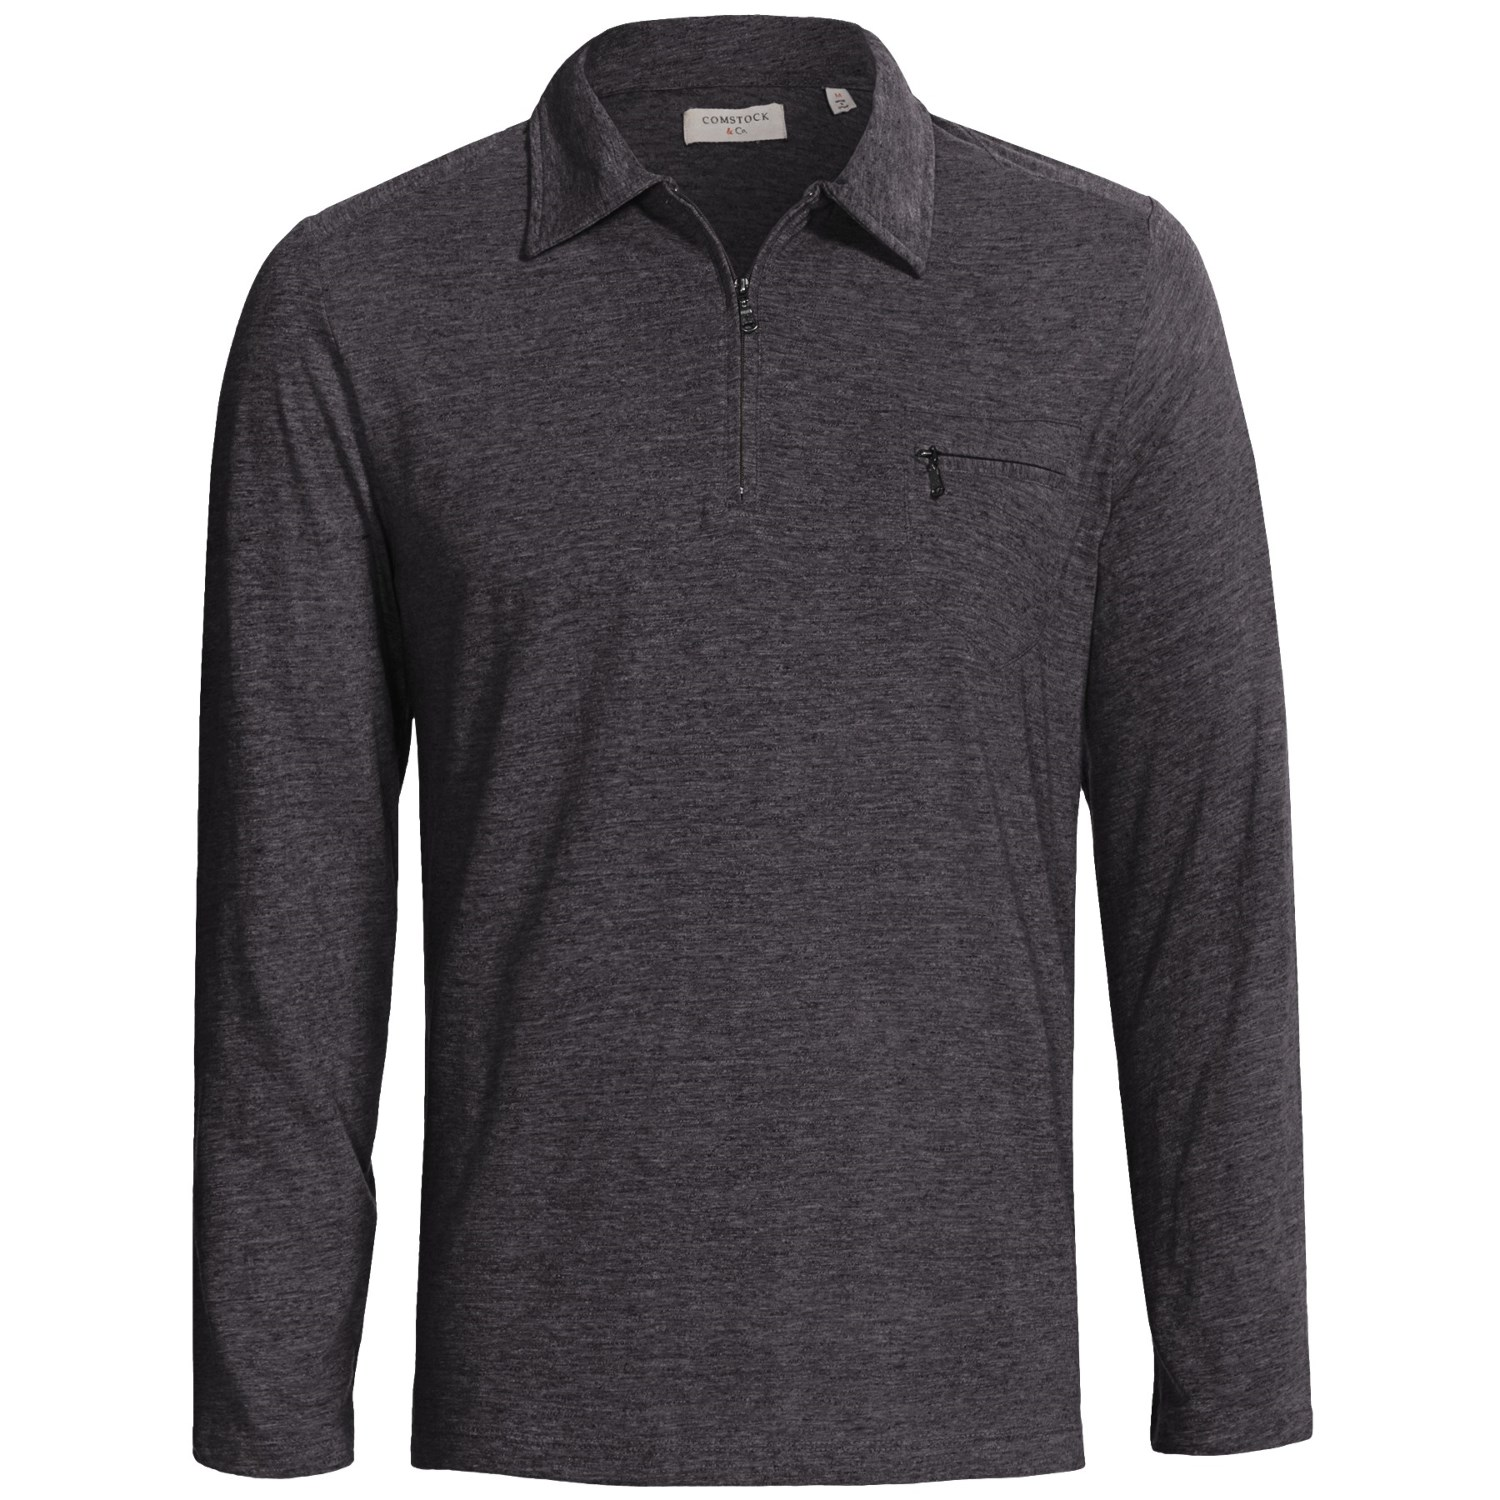 Mens knitted long sleeve polo shirts for Polo shirts long sleeve men